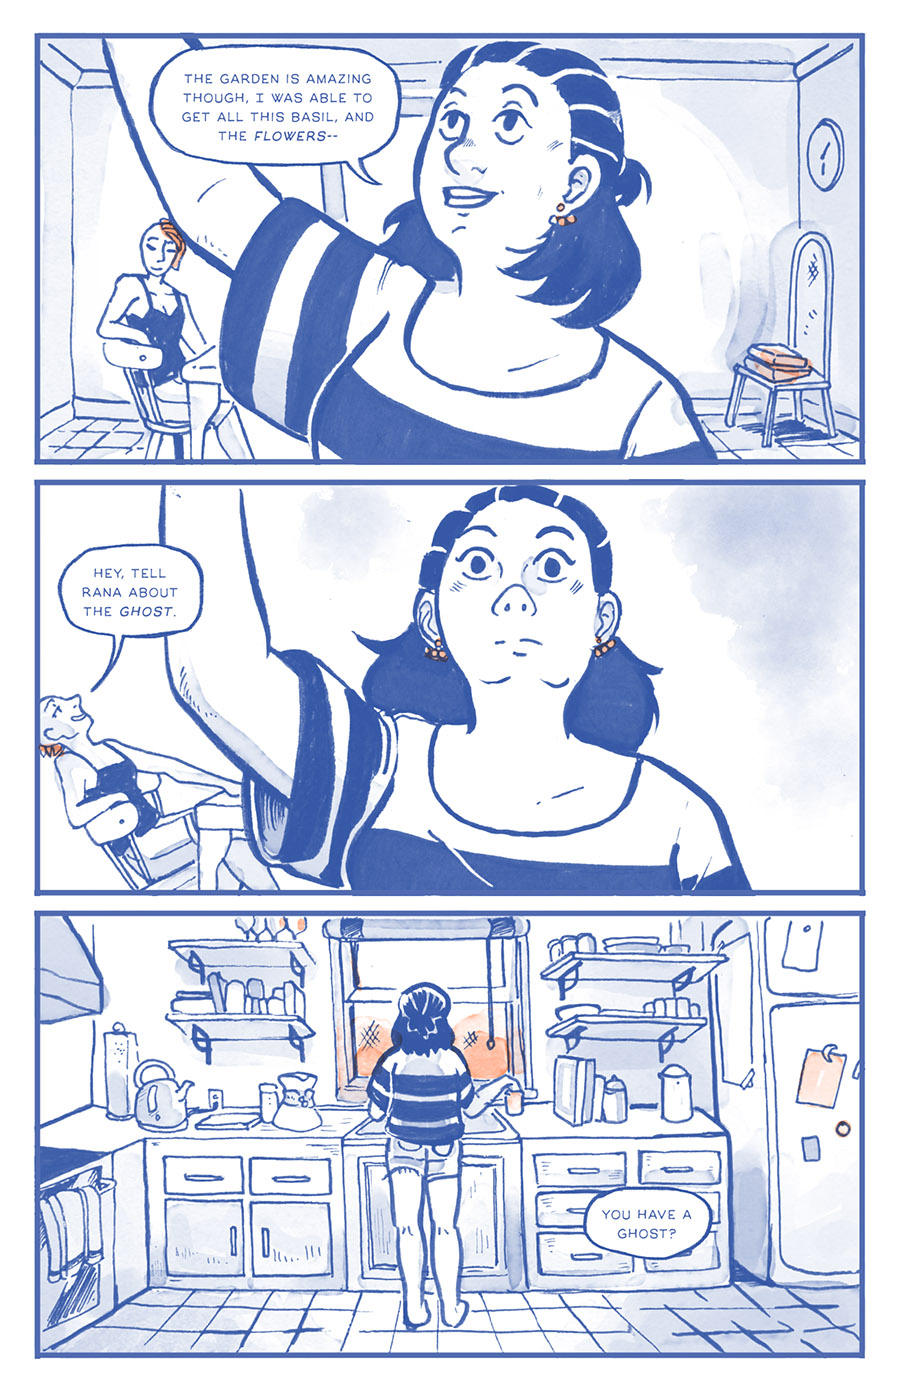 ICSY_Digital_03: Page 3 of I Can't See You